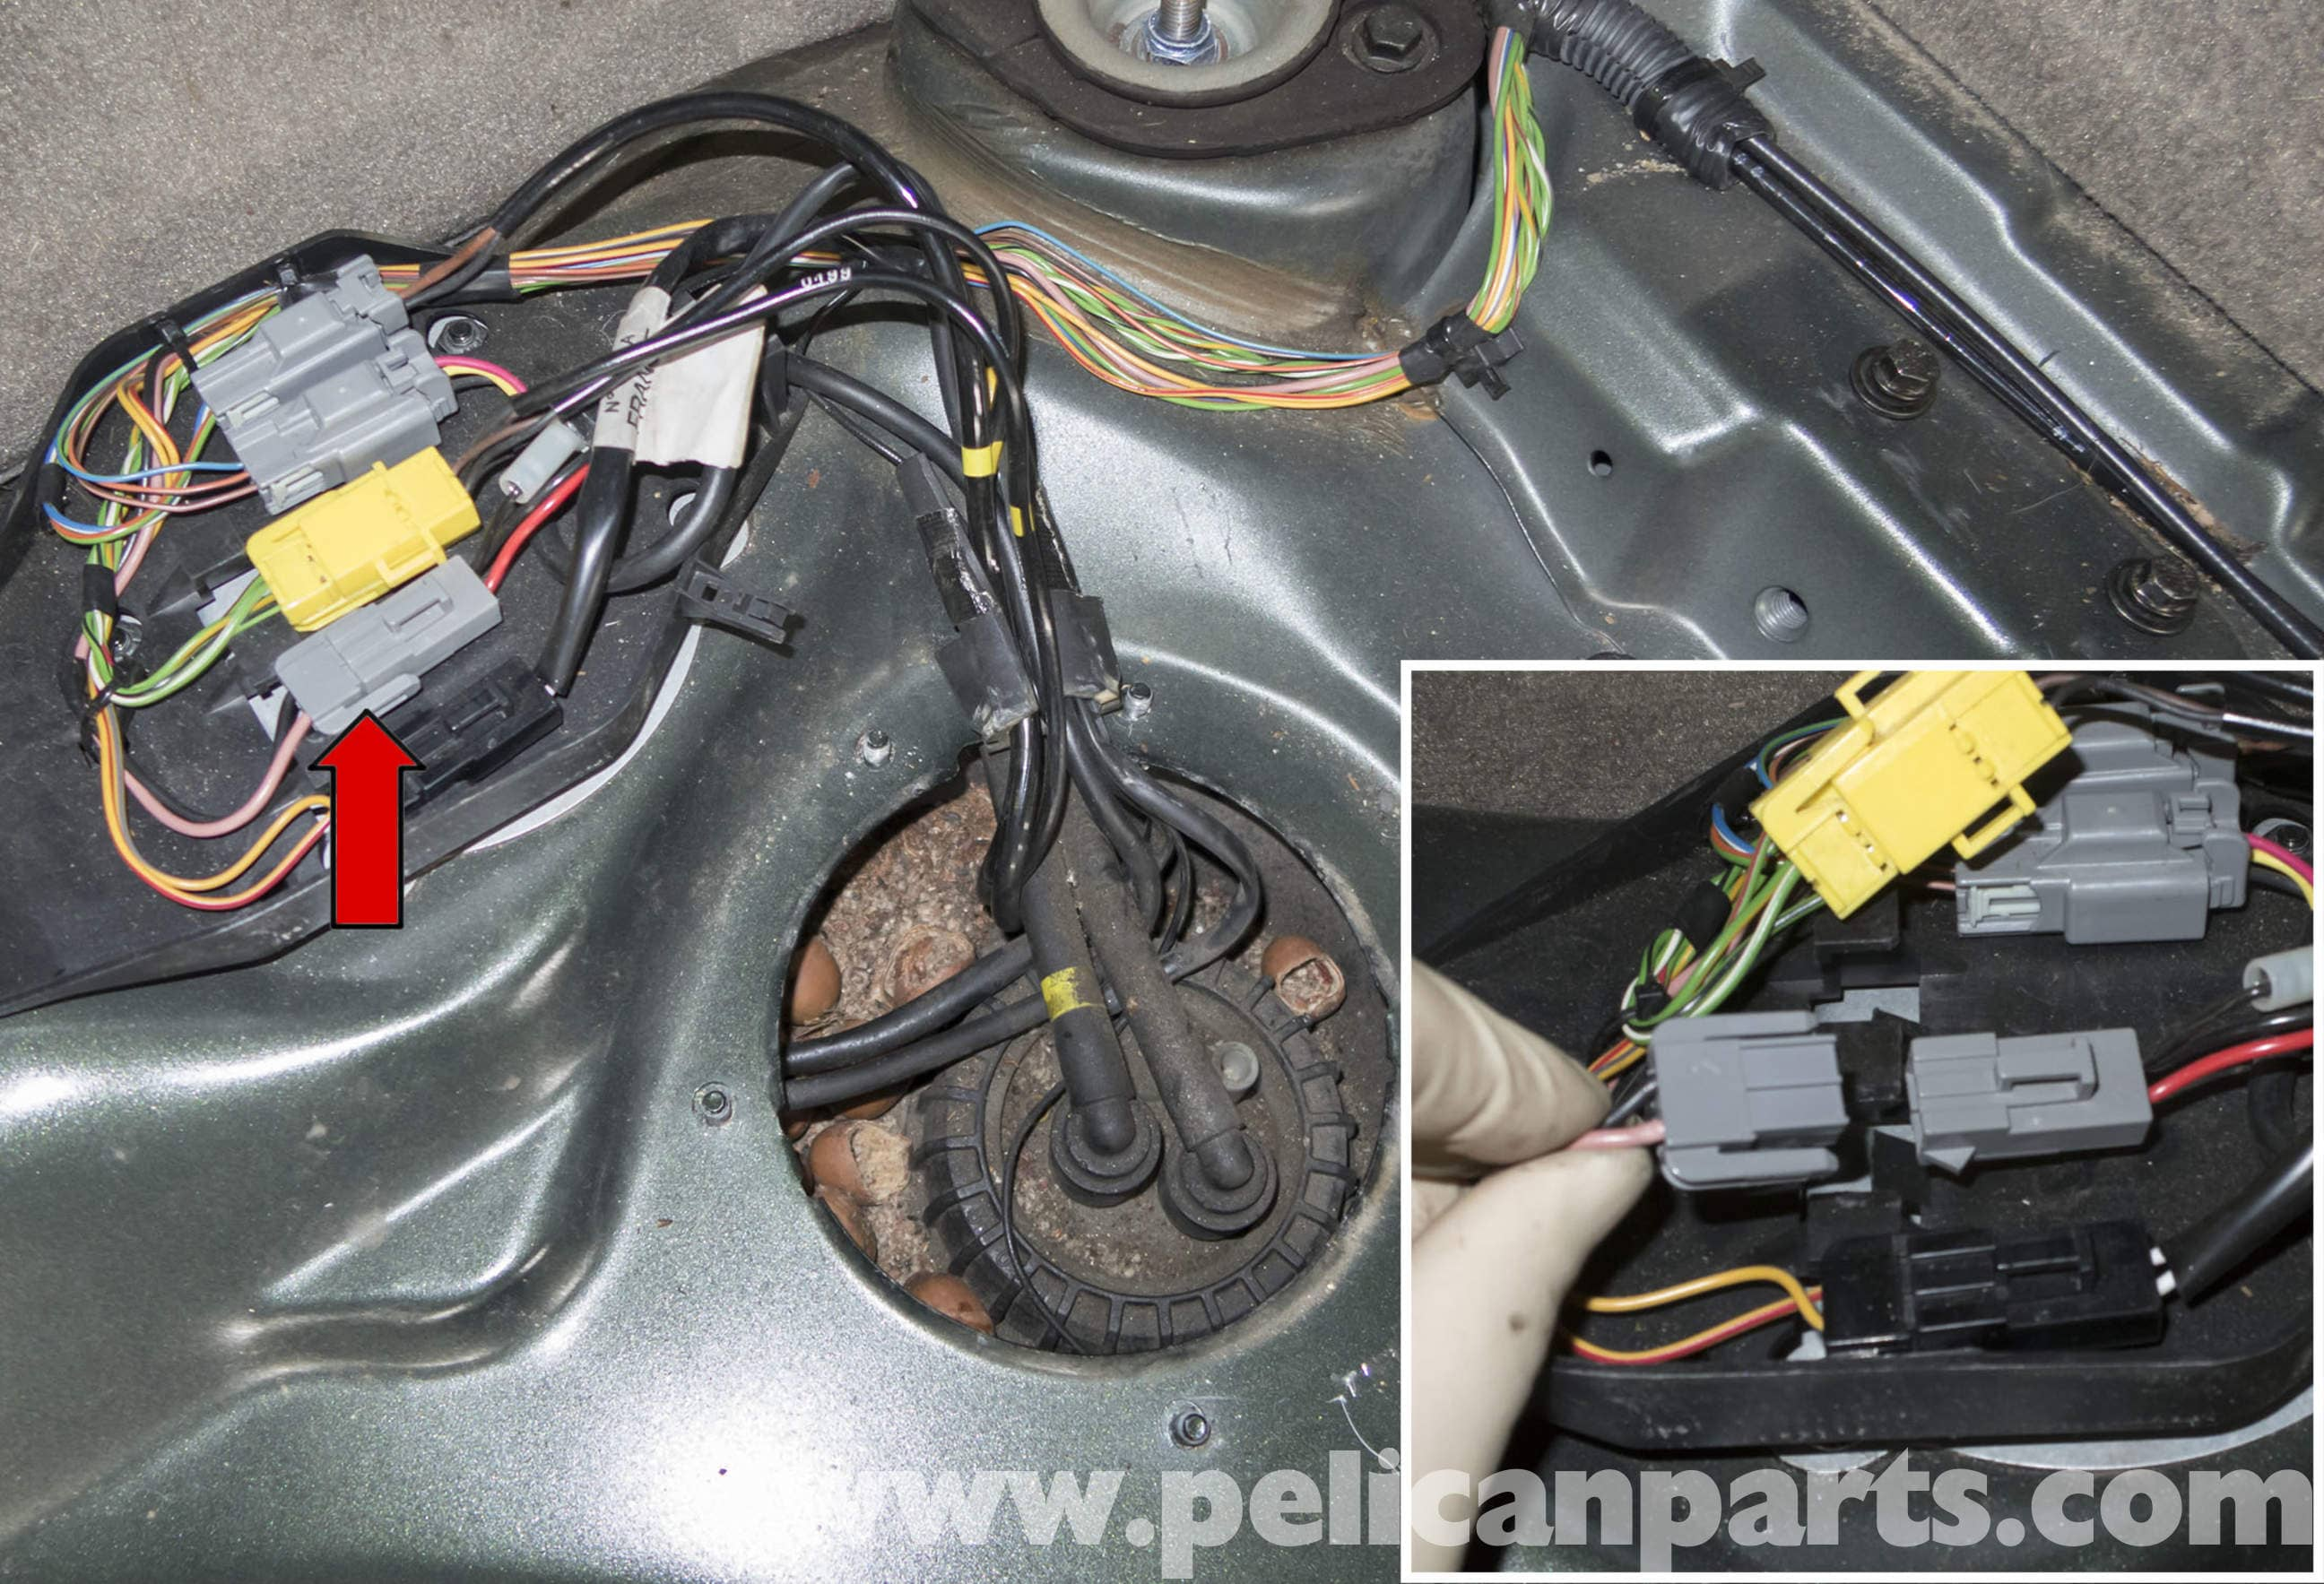 2008 Gmc Yukon Fuel Pump Wiring Diagram Will Be A Thing Volvo V70 Replacement 1998 2007 Pelican Sierra Control Module